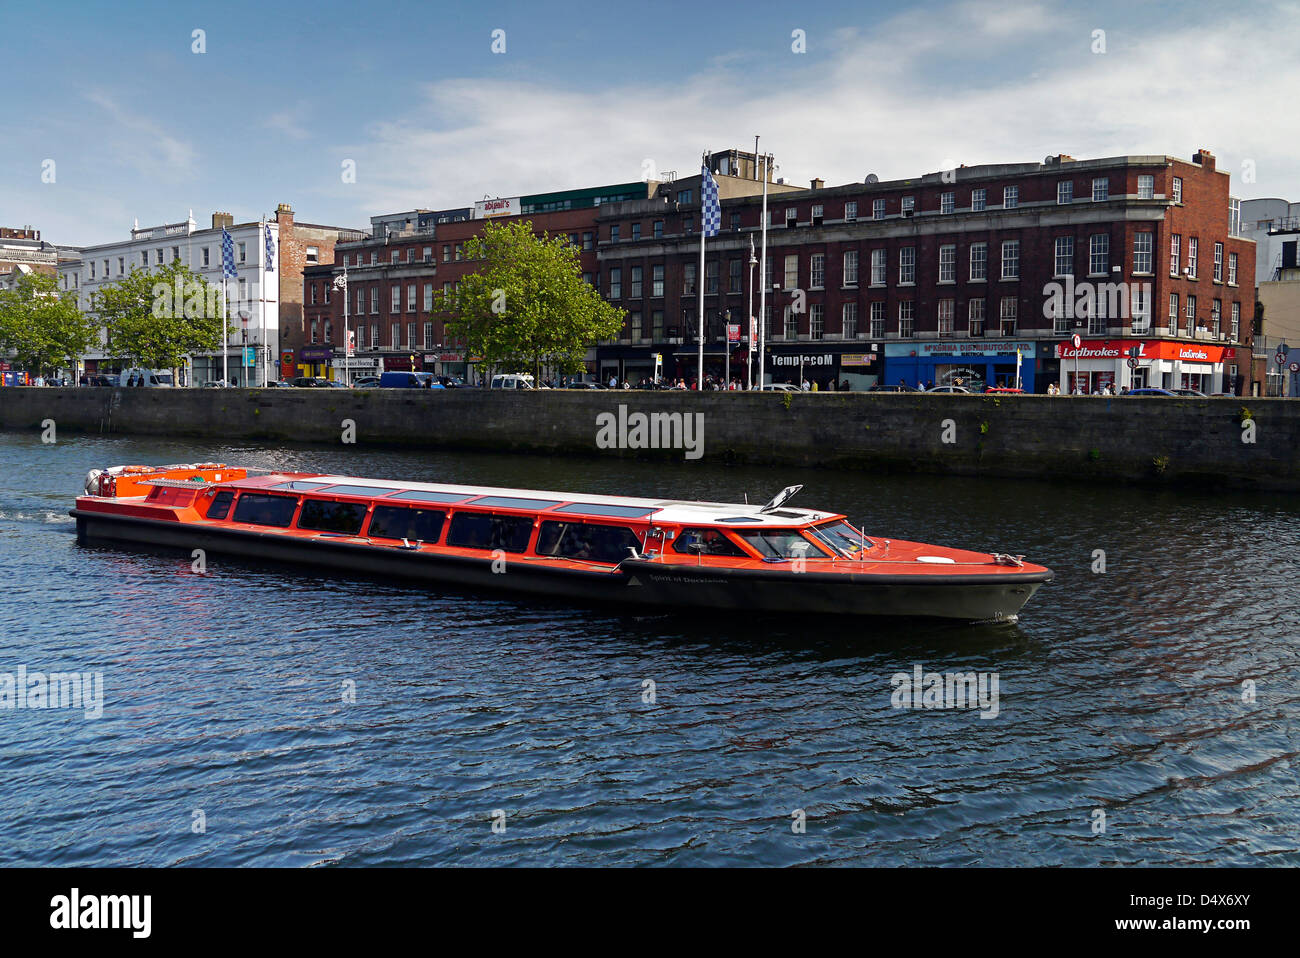 Spirit of Docklands tour boat on River Liffey in Dublin Stock Photo